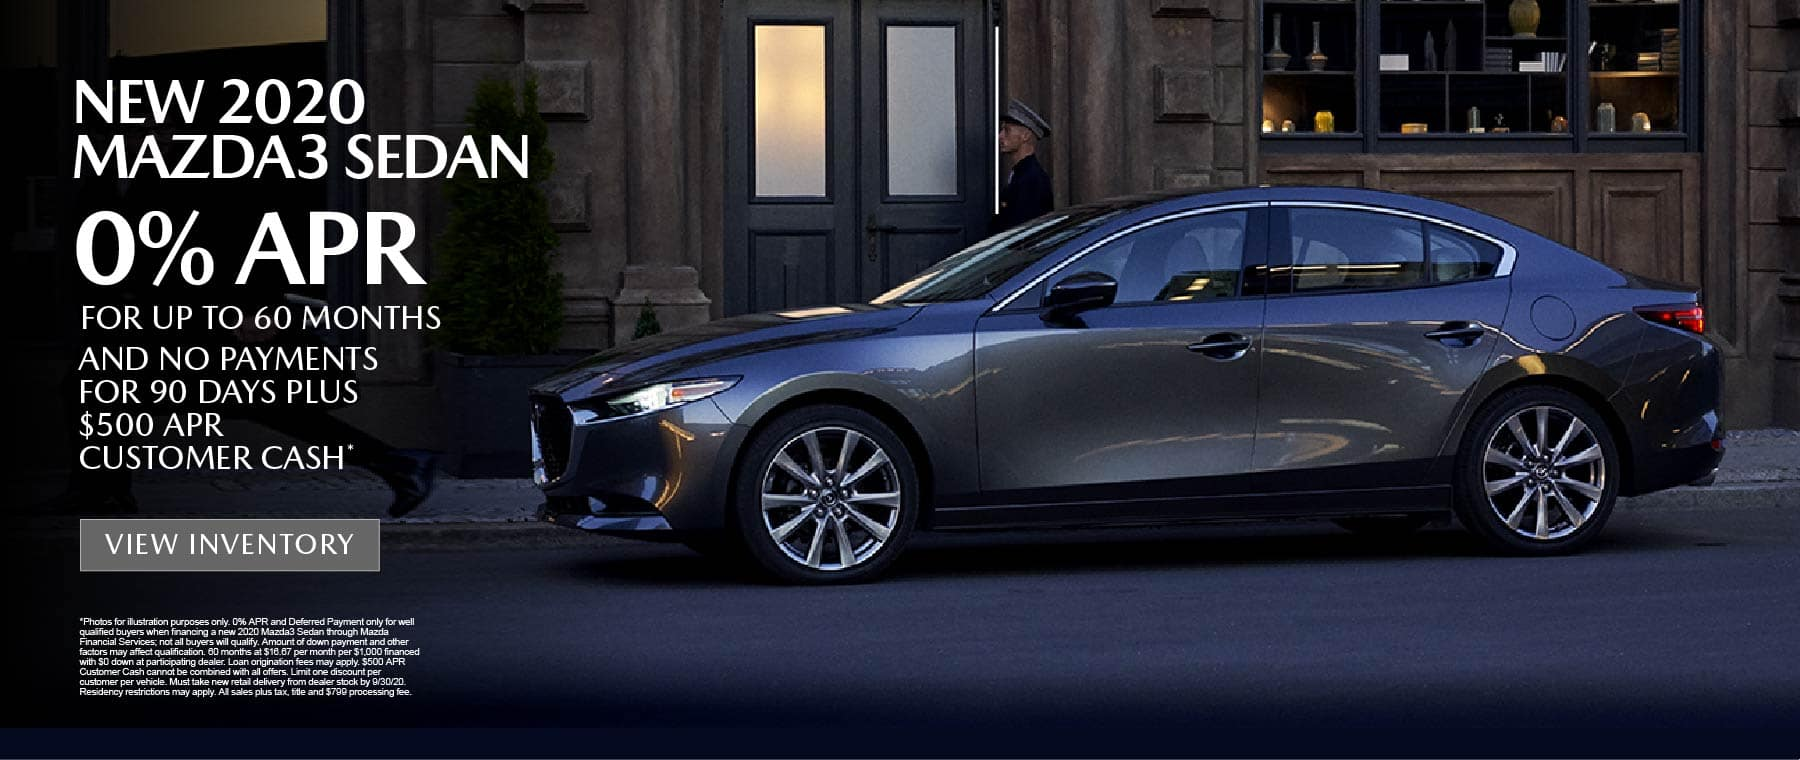 New 2020 Mazda3 Sedan 0% APR for up to 60 months - click here to view inventory